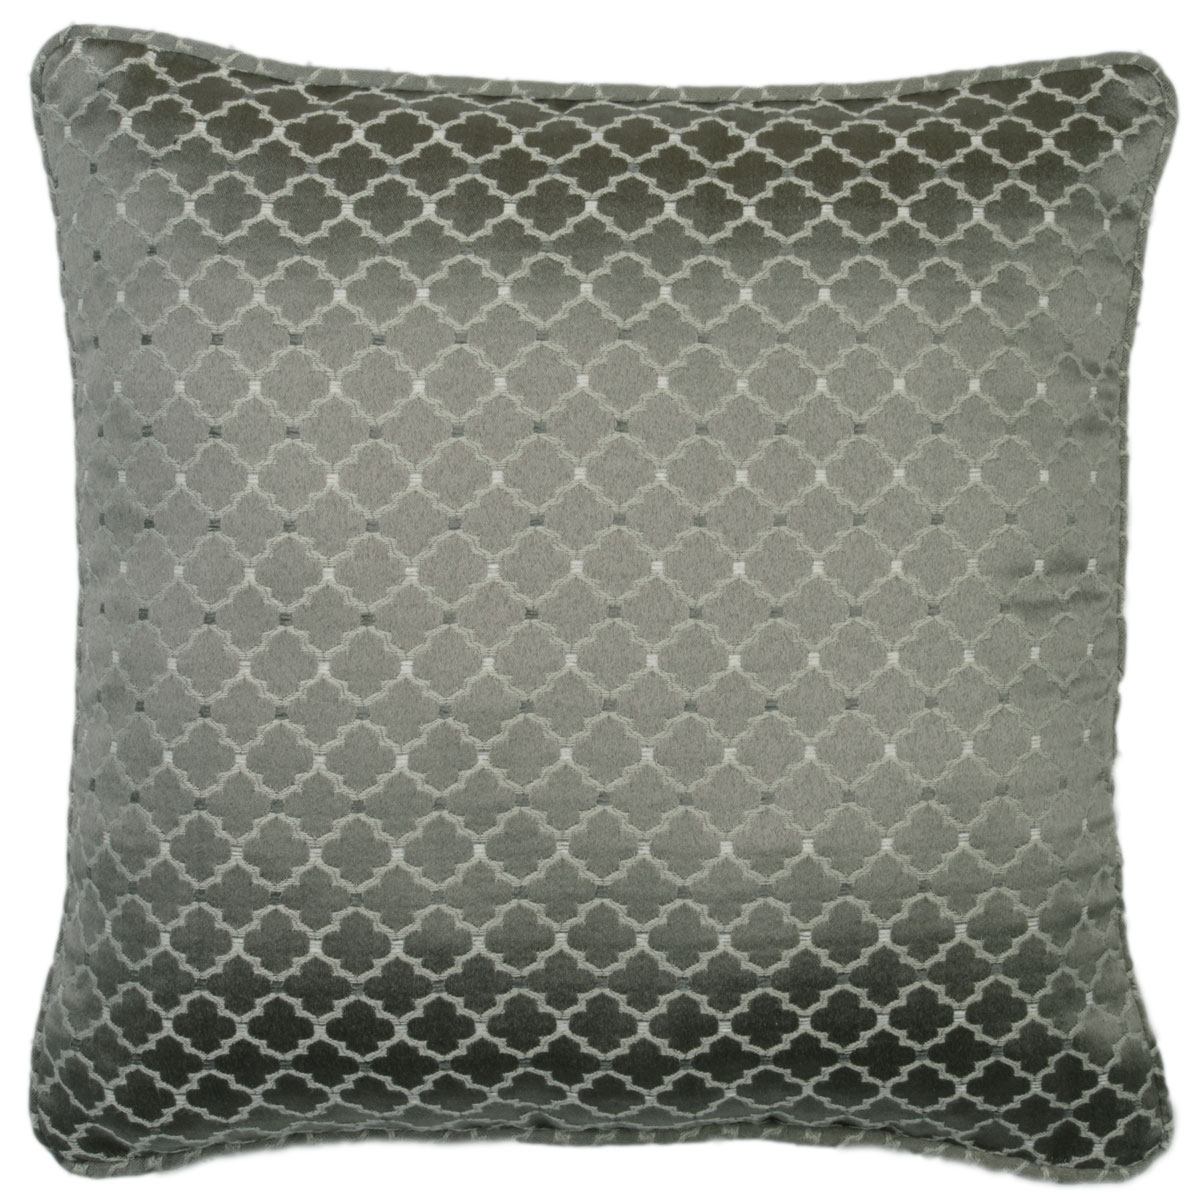 Bargain Pewter Marrakech Filled Cushion Stockists